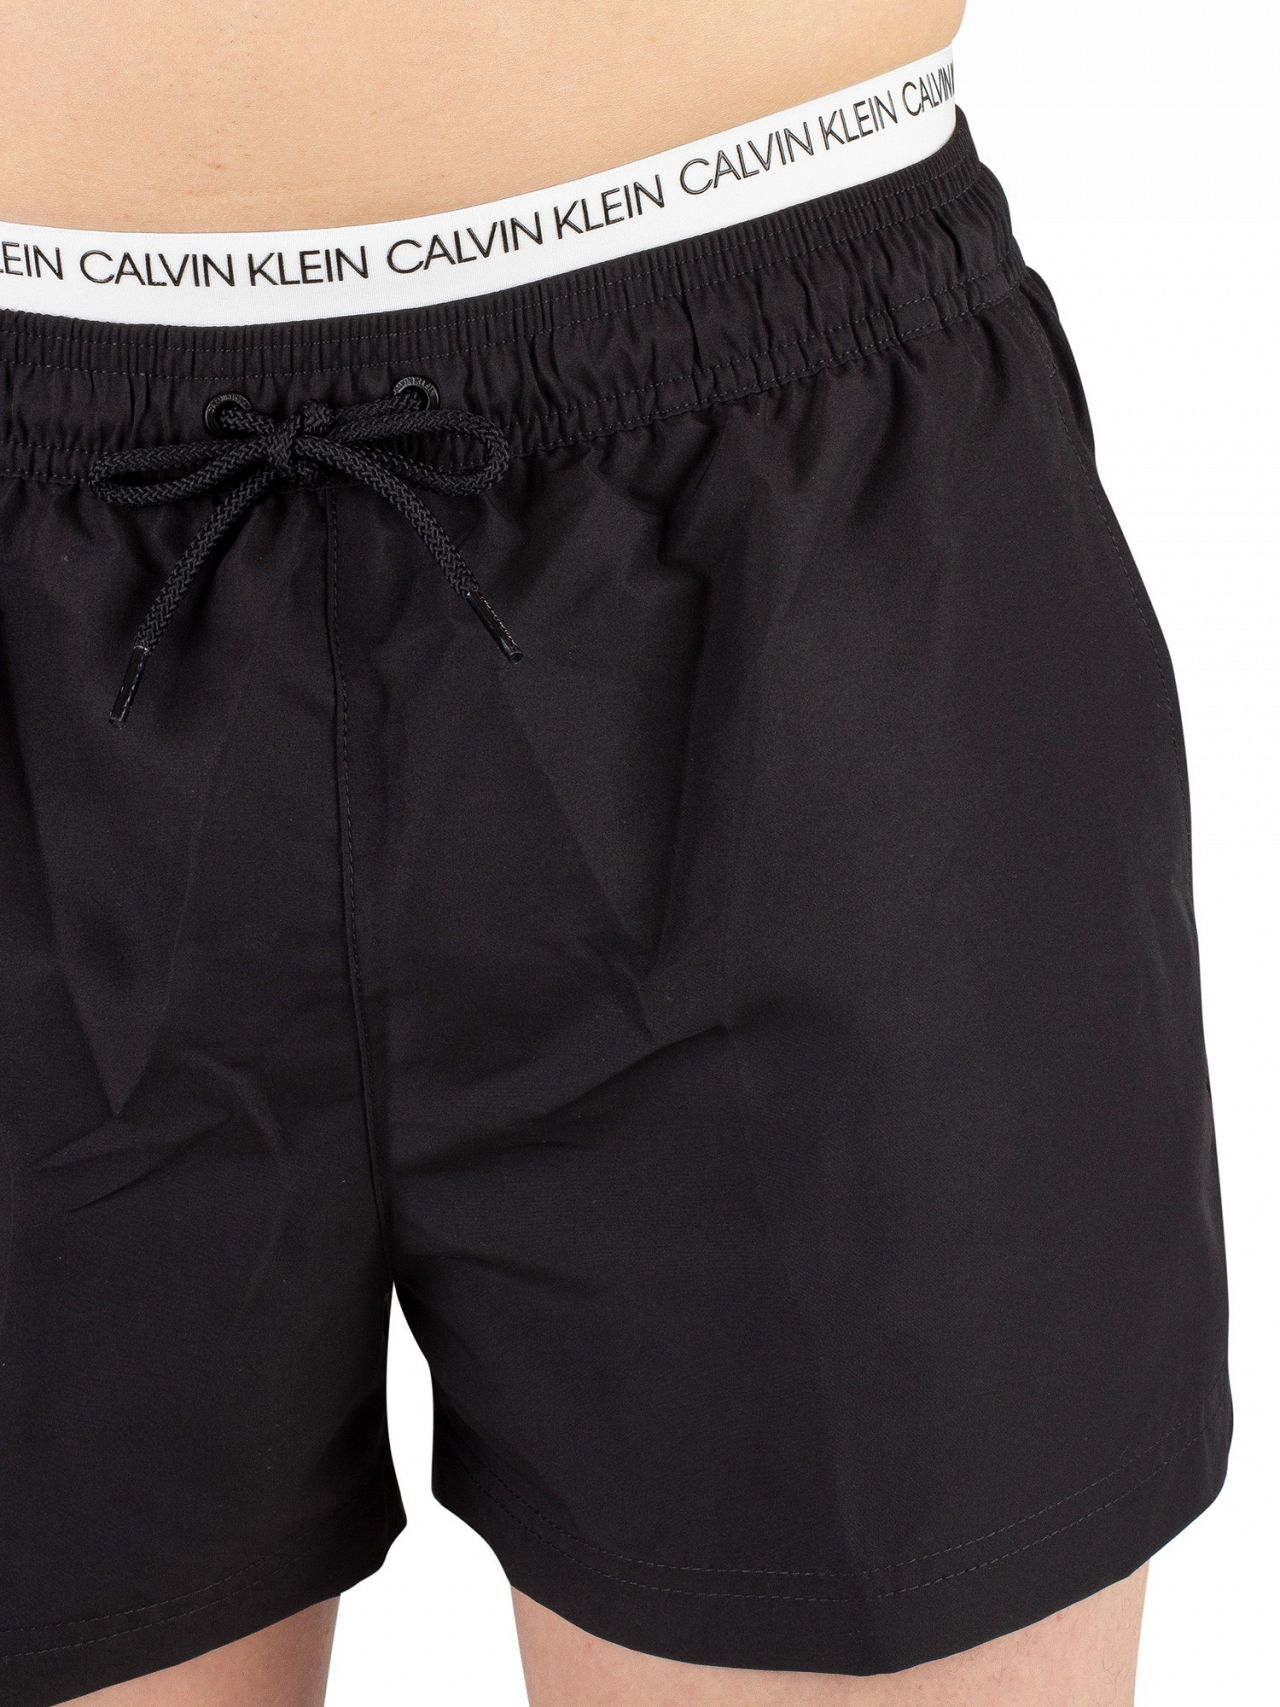 9f57df35a9 Calvin Klein Black Short Double Waistband Swim Shorts | Standout